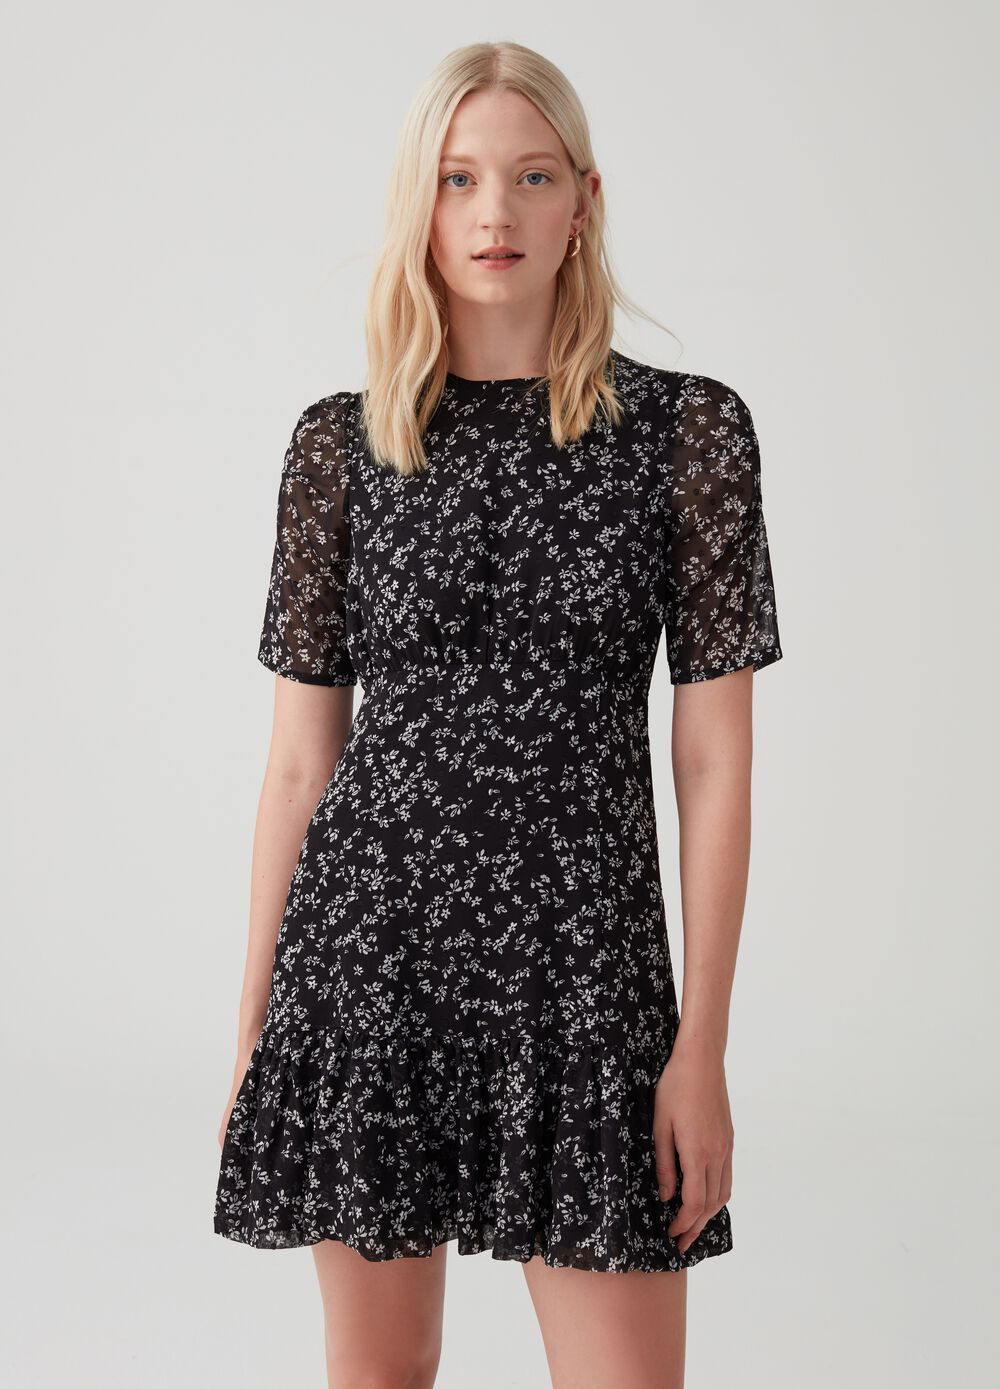 Floral patterned dress with zip